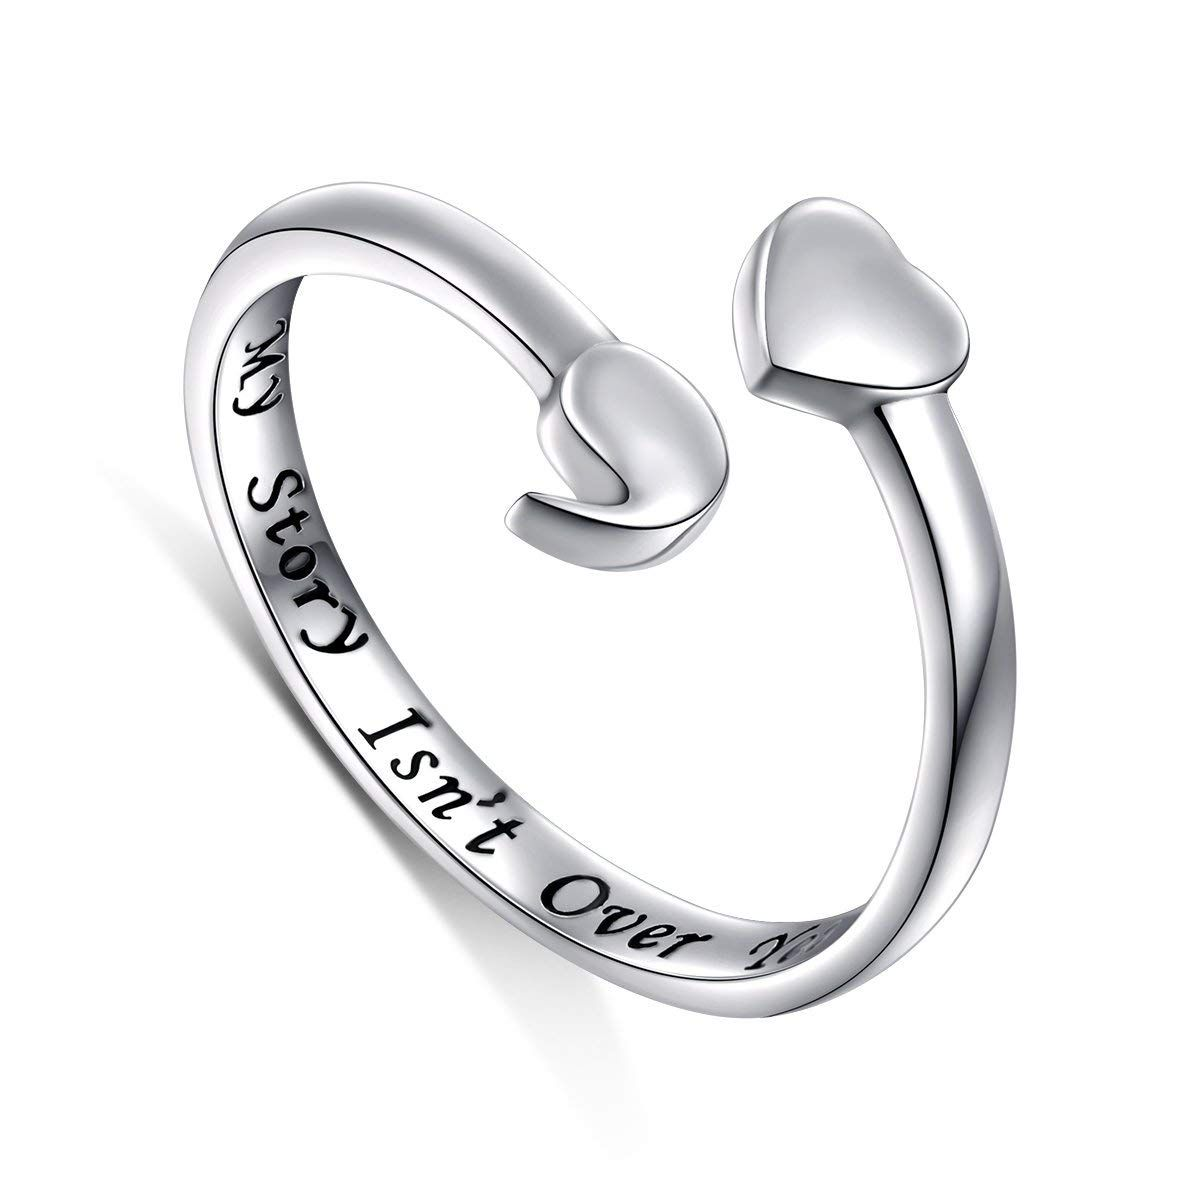 Semicolon Ring 925 Sterling Silver My Story Isn't Over Yet Spiritual Awareness for Suicide and Depression Jewelry QH0160